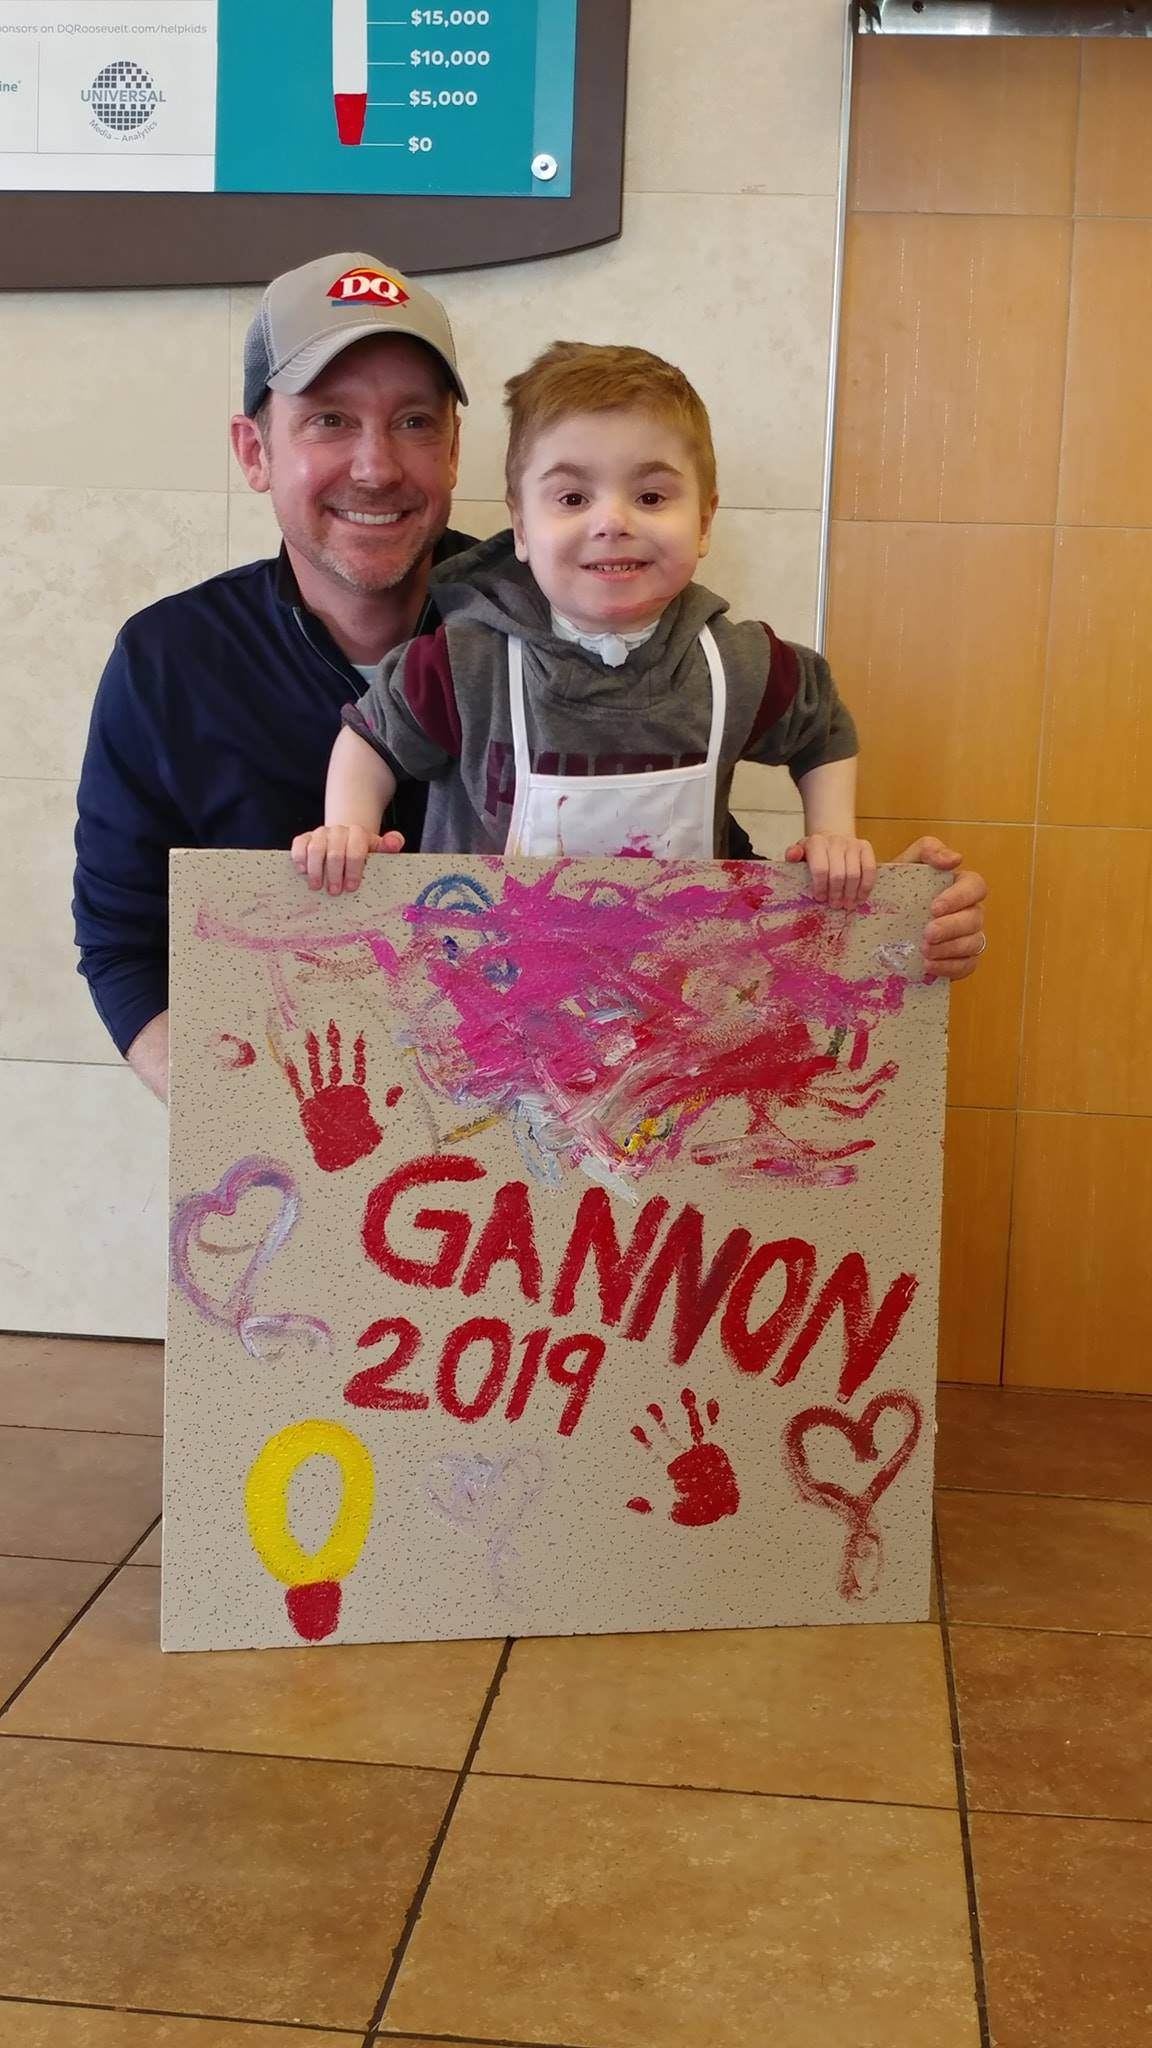 Gannon came to DQ Roosevelt this year as our official 2019 Miracle Child of DQ Roosevelt. He painted a ceiling tile to put his amazing personality in our store forever!